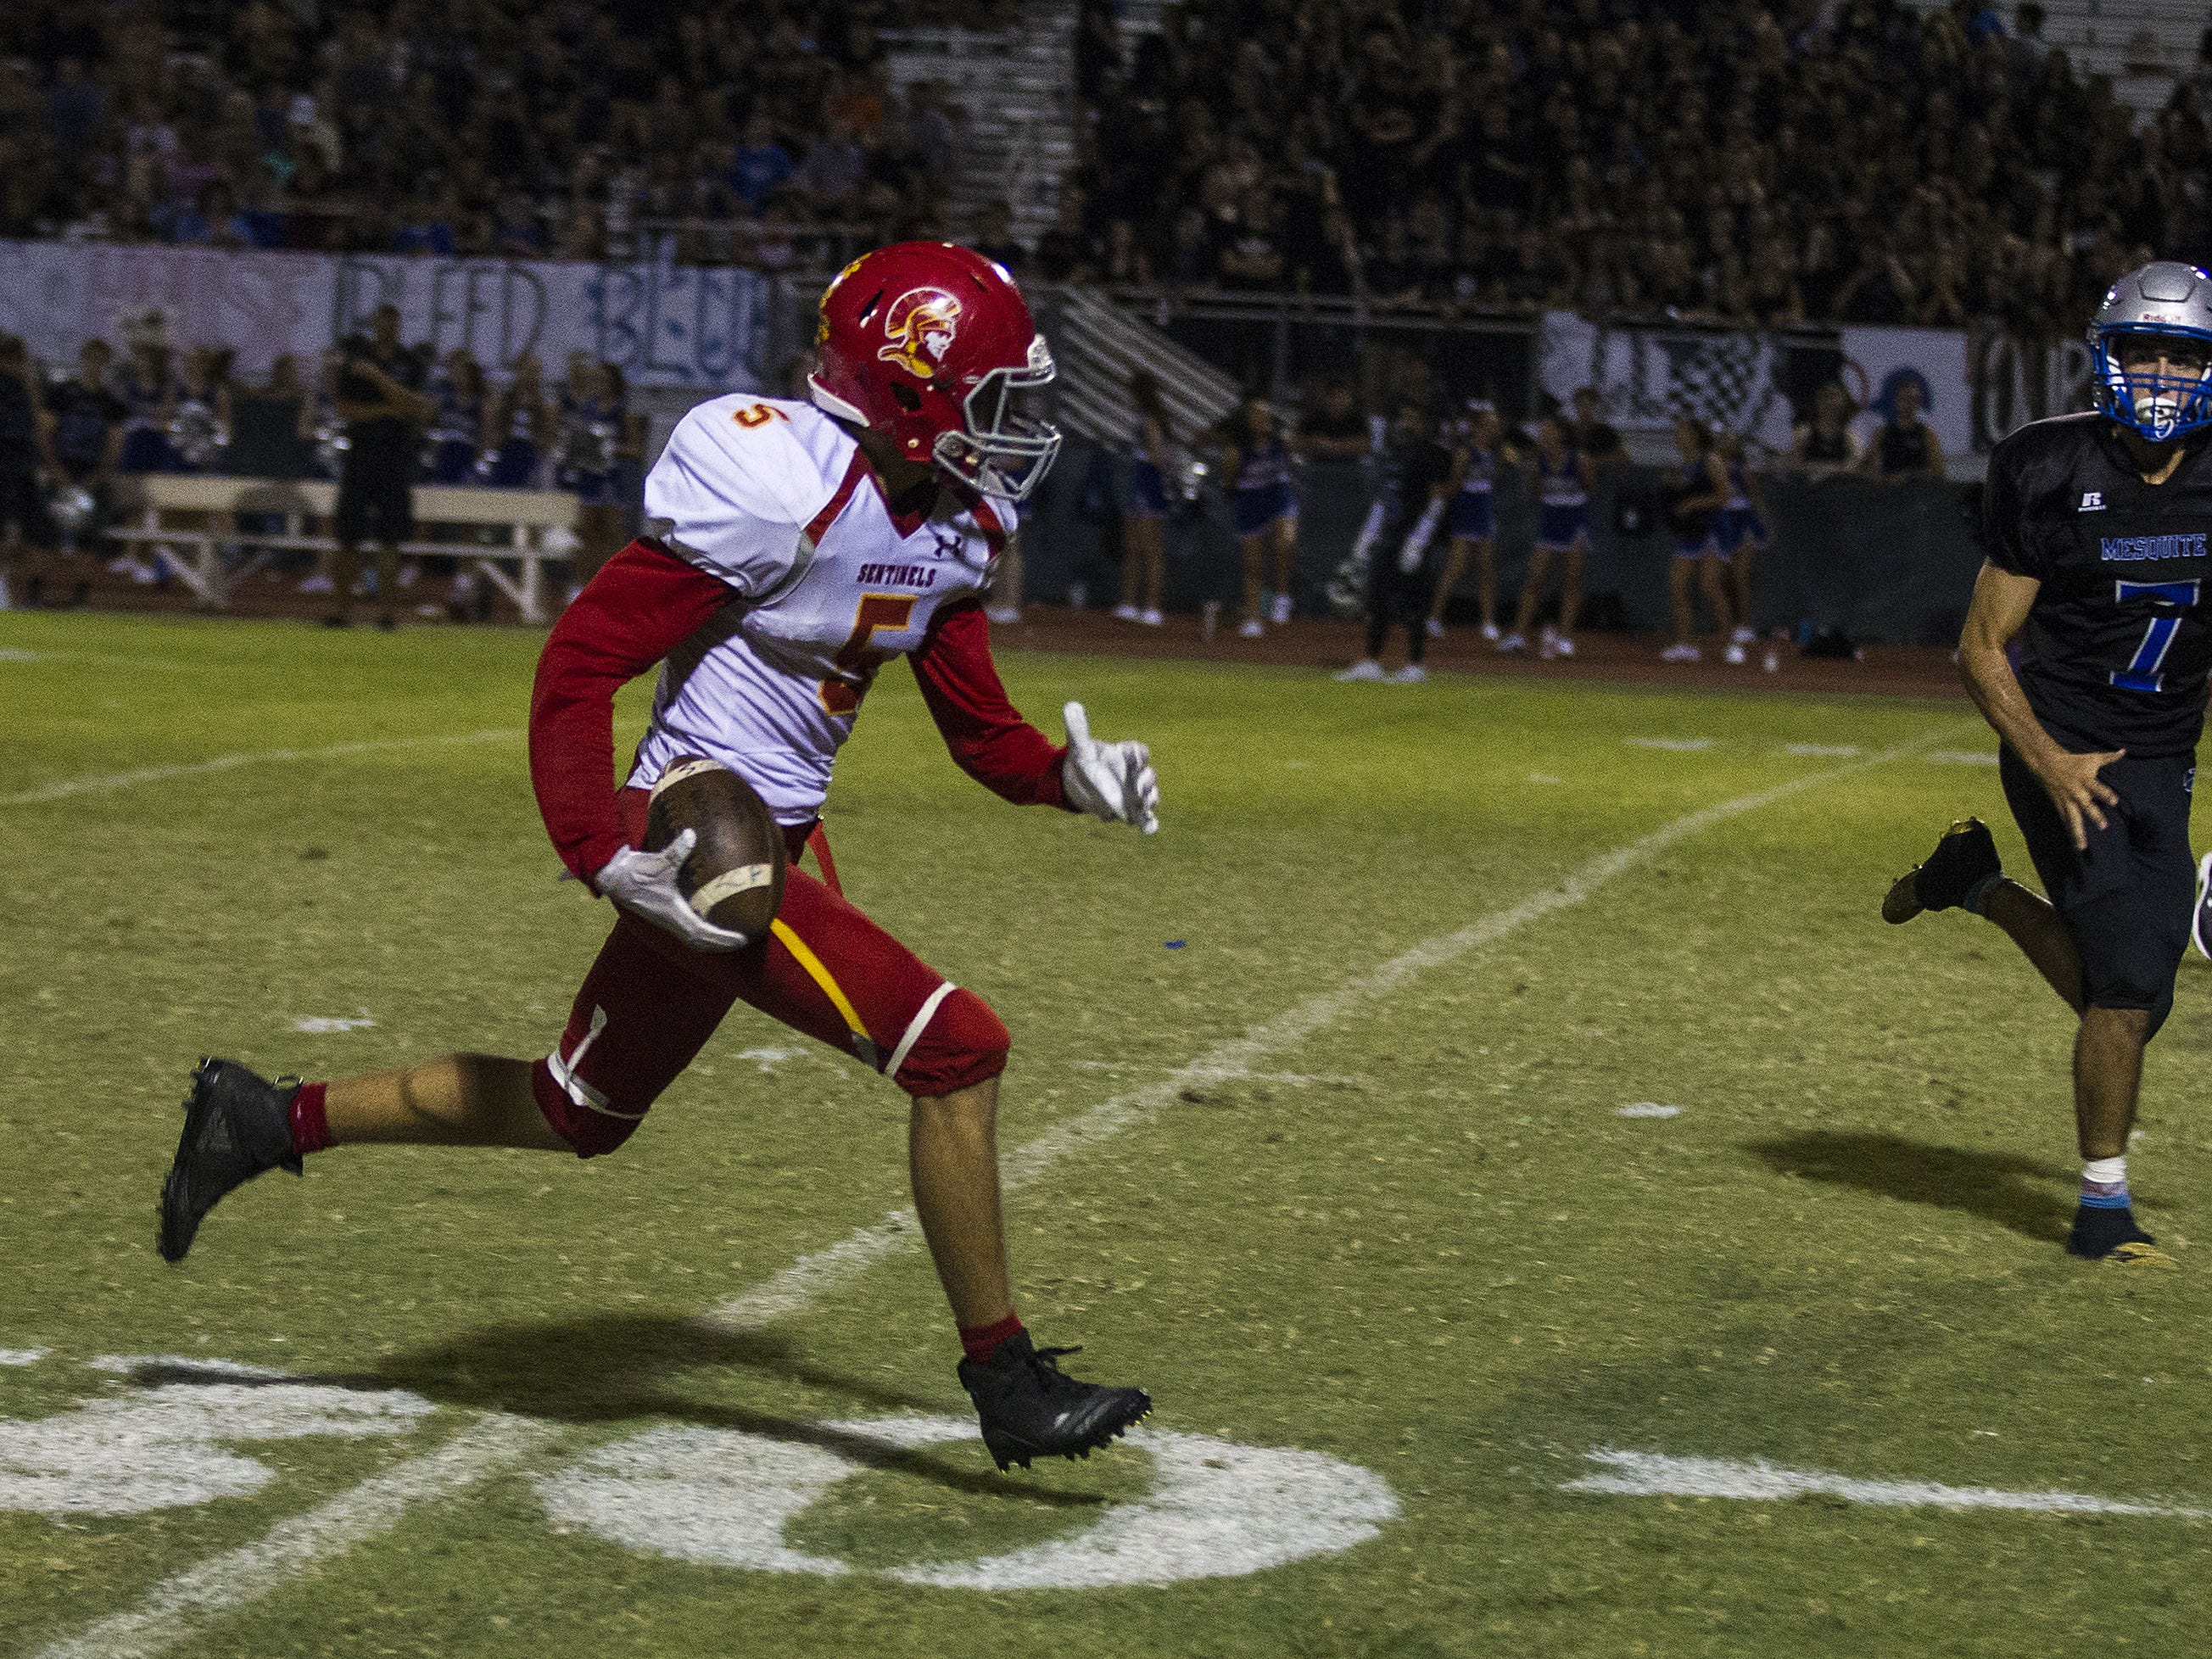 Seton's Colten Christiensen runs upfield against Mesquite's Jacob Henderson during their game in Gilbert Friday, Sept. 21, 2018. #azhsfb